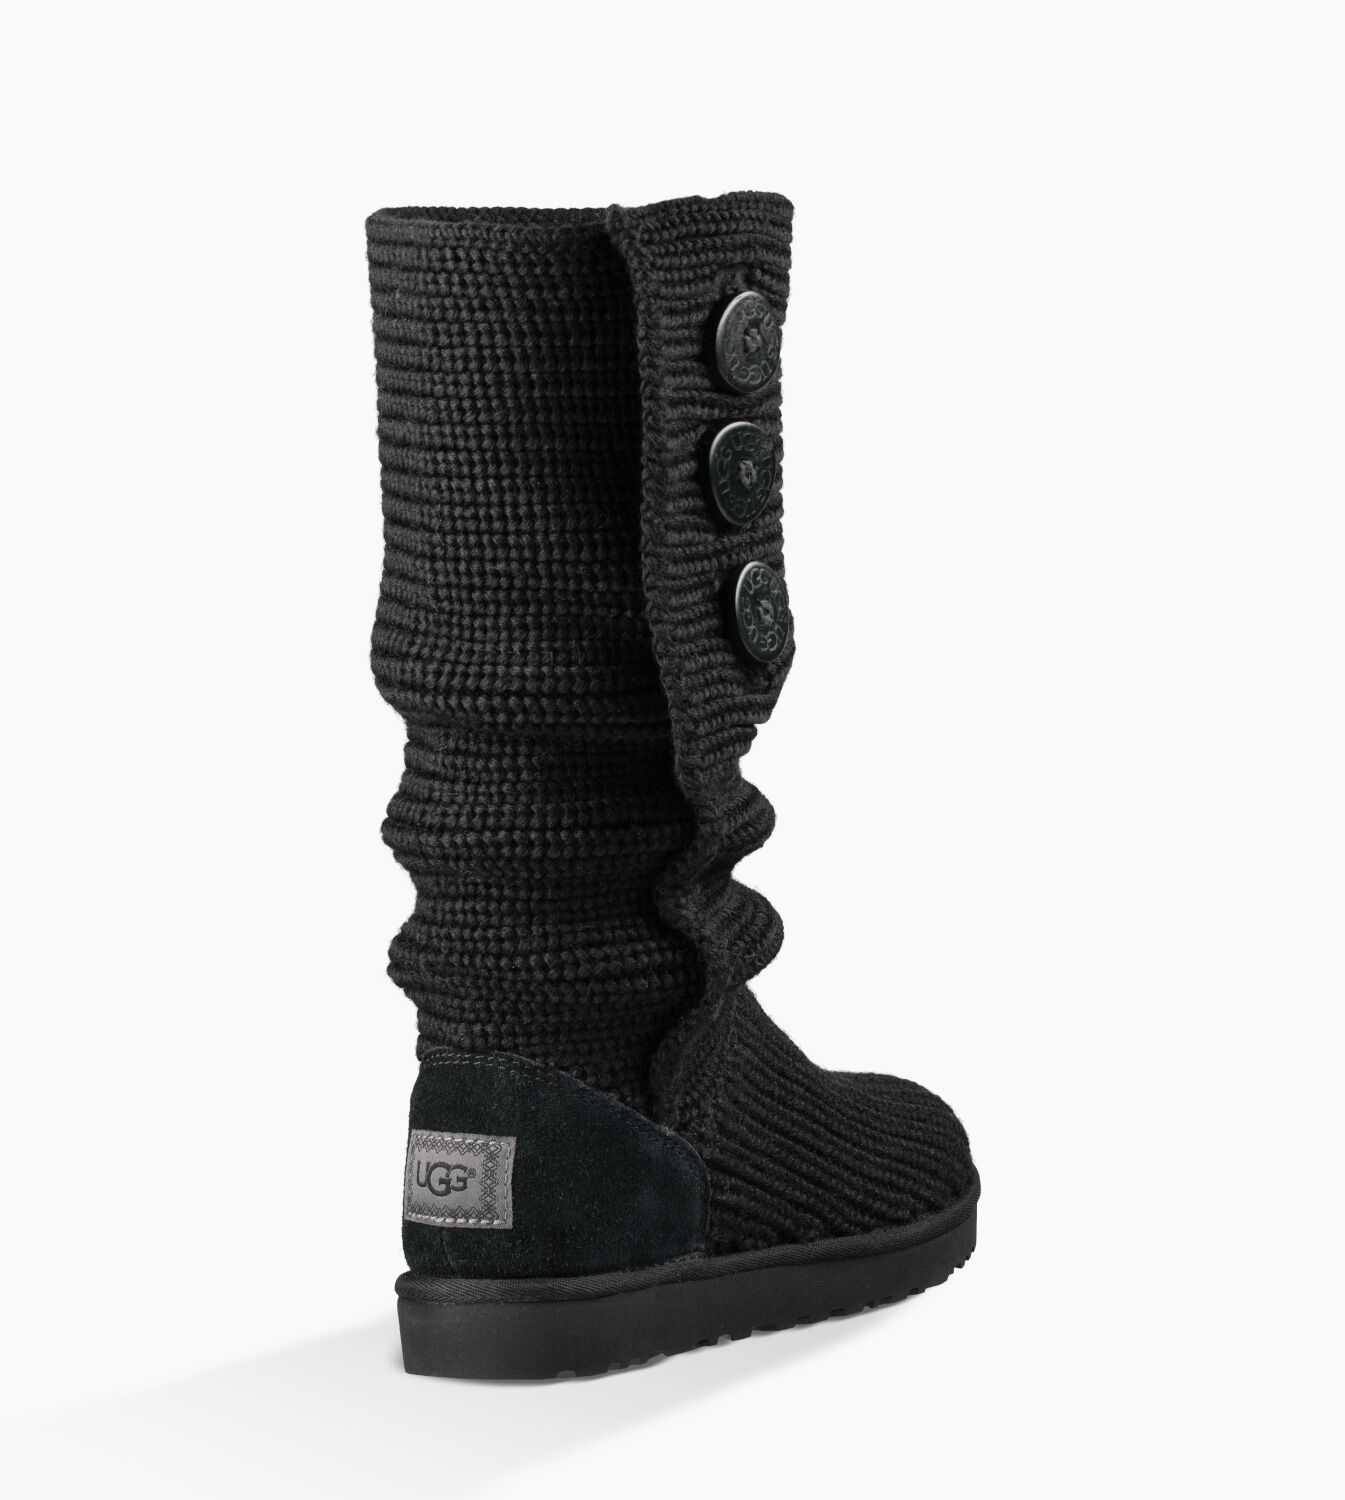 classic ugg cardy boots ugg official rh ugg com